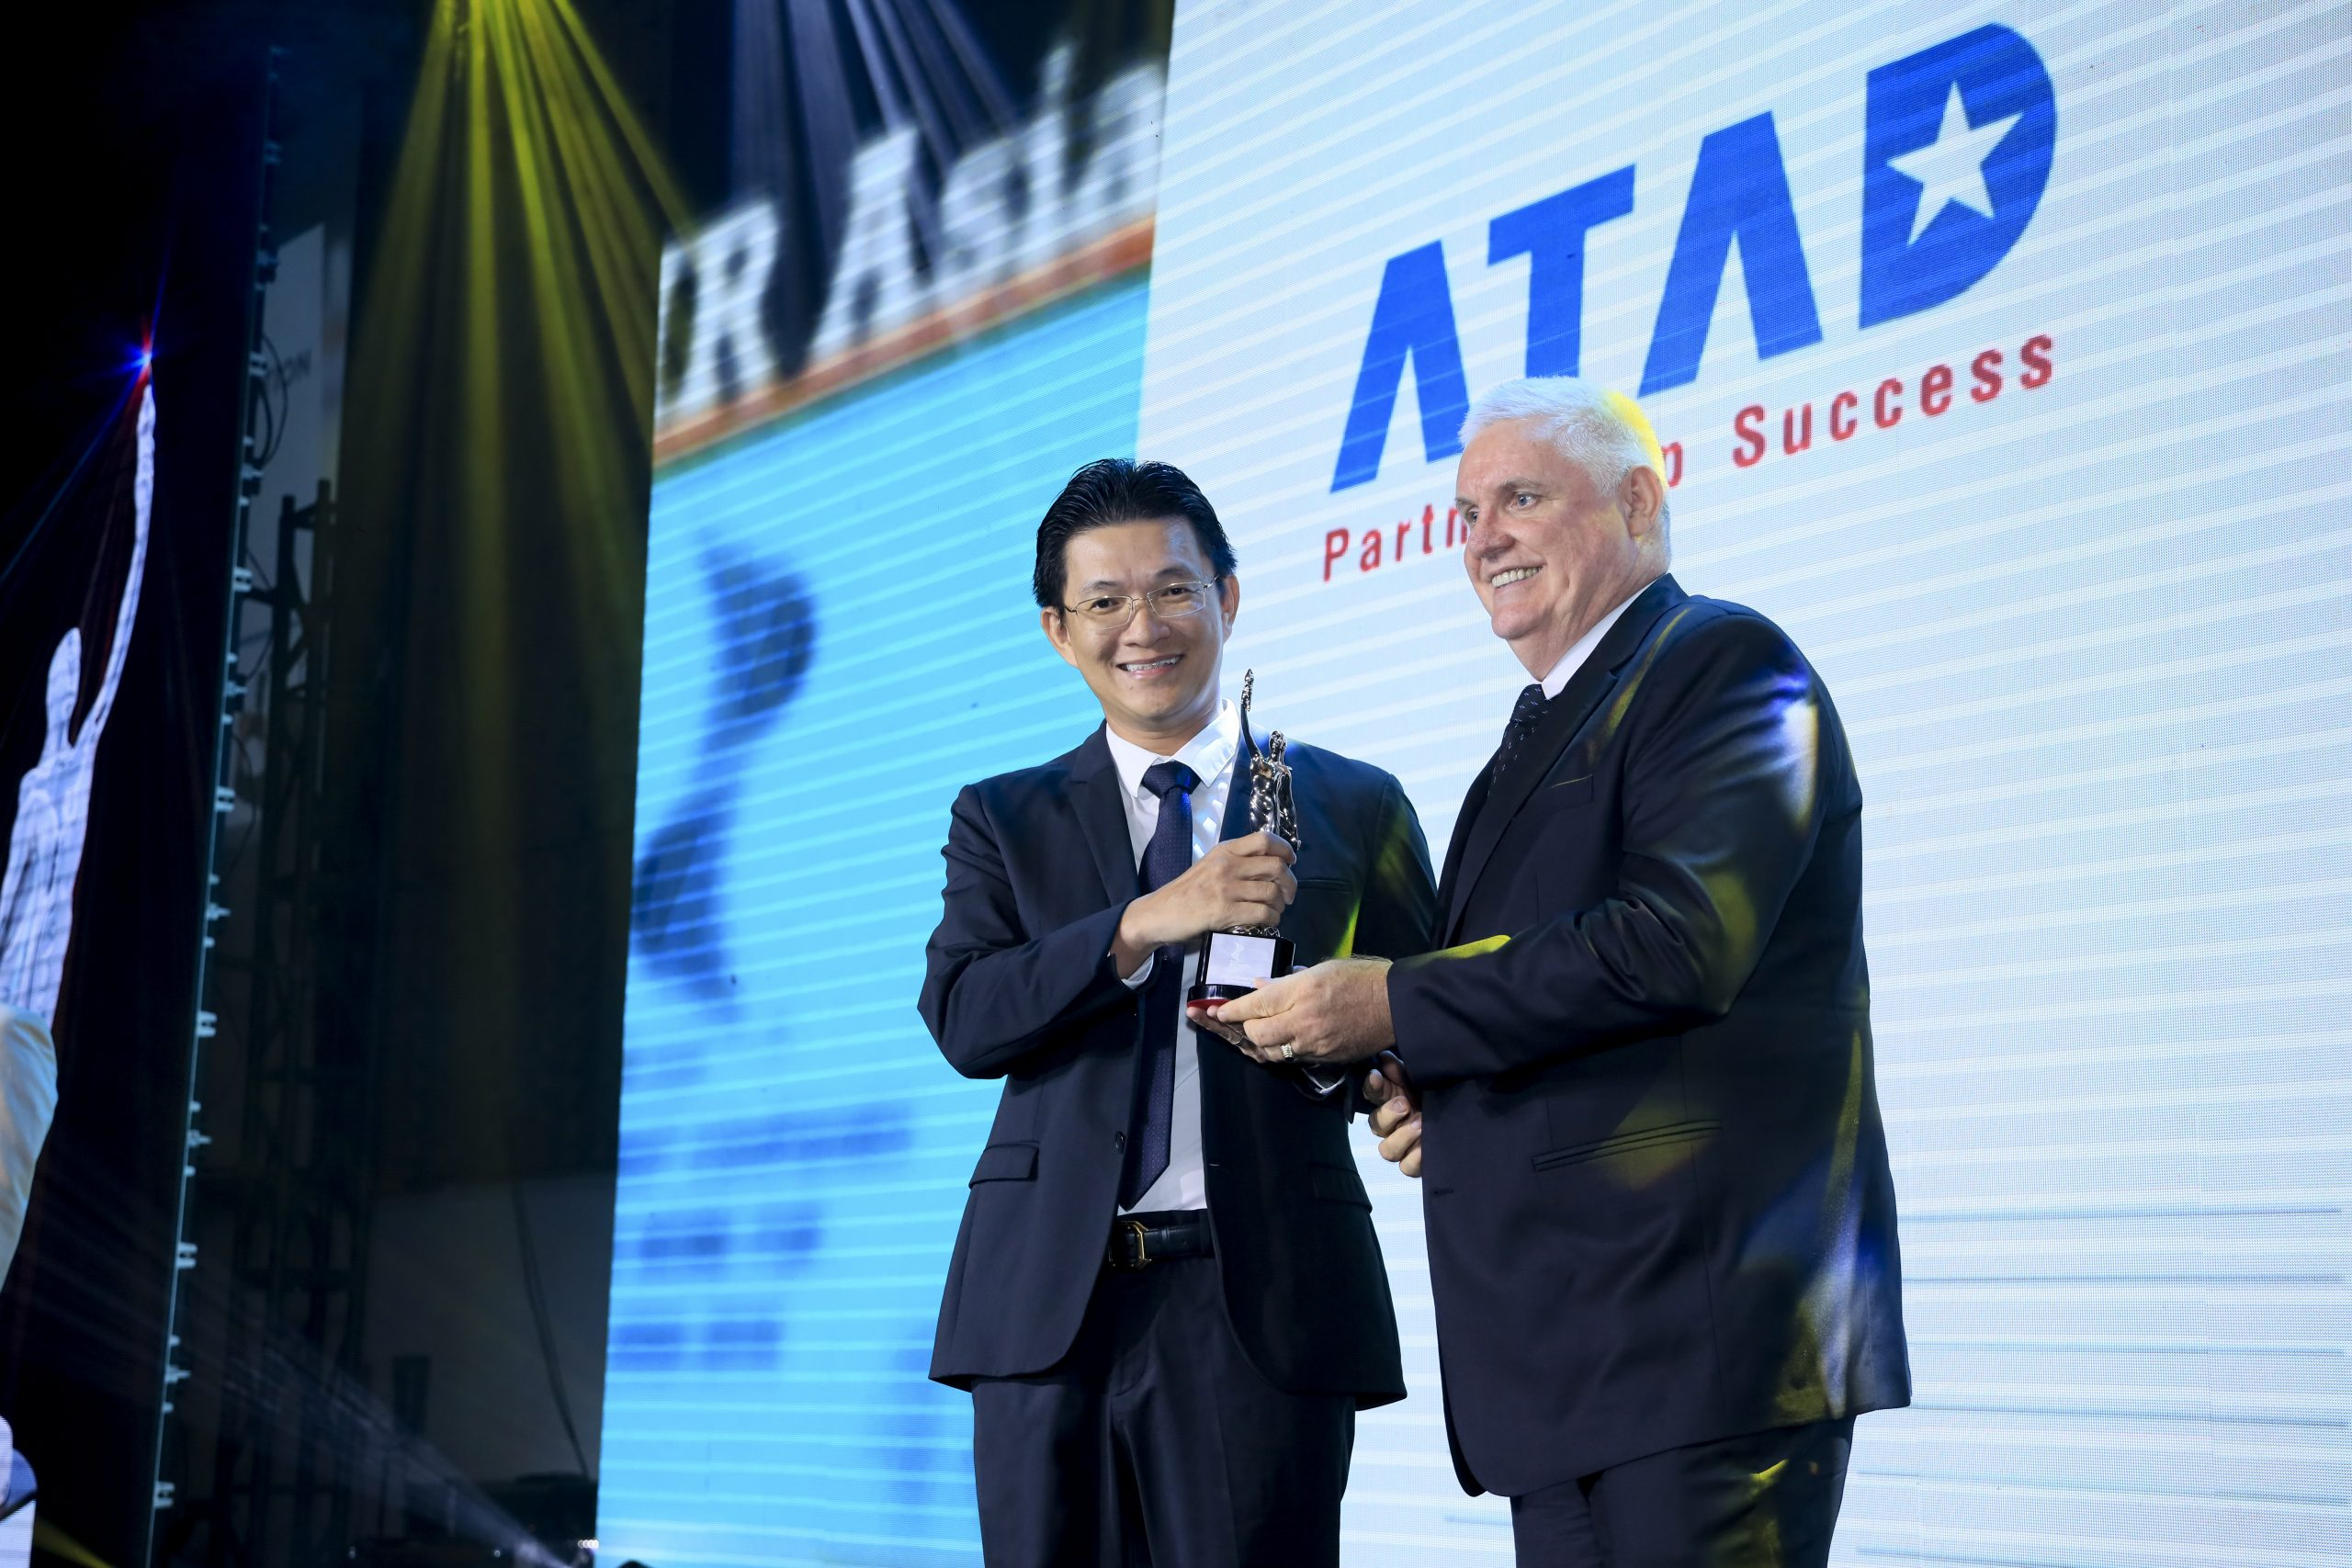 Mr. Nguyen Le Anh Tuan - General Director represents the company's employees to receive Best Companies to work for in Asia 2020 awards